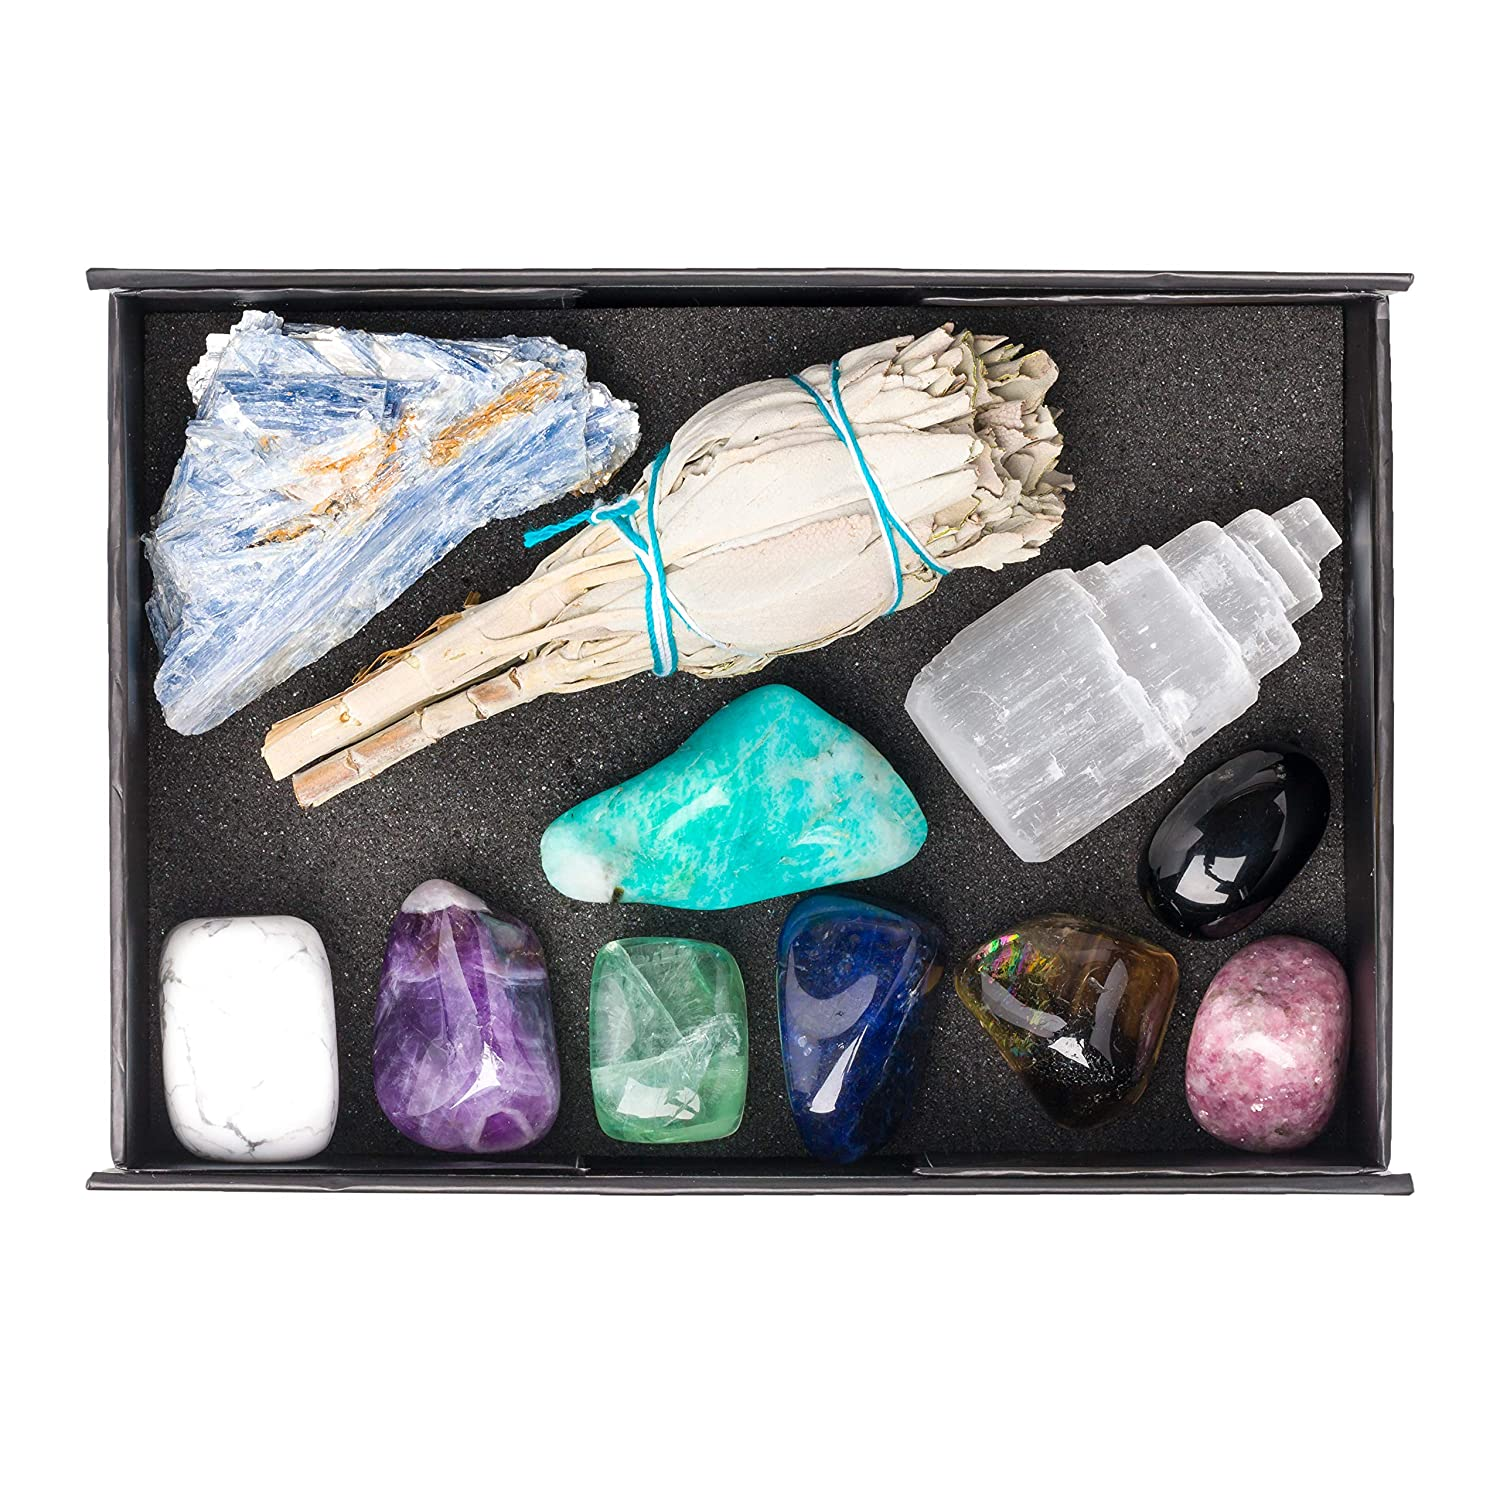 Premium Grade Crystals for Relaxation, Stress Relief, Anxiety, Sleep / 11 pc Calm Crystal Healing Set - Amethyst, Lepidolite, Fluorite, Smoky Quartz, Howlite, Sage & More + Info Guide/Gift Ready